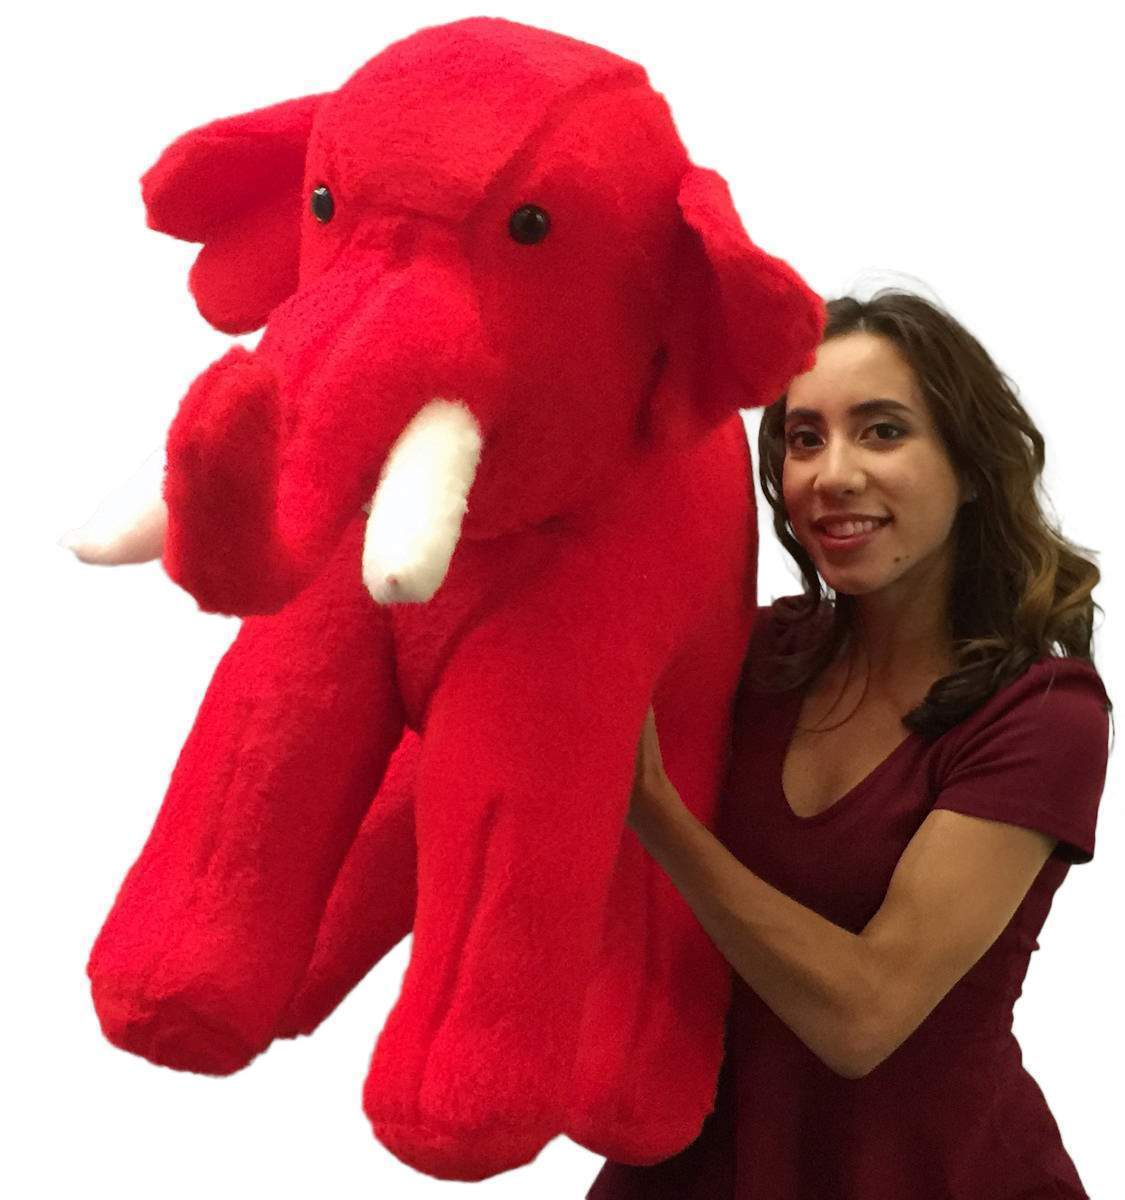 American Made Large Stuffed Red Elephant 36 Inches Big Plush Animal Made in USA